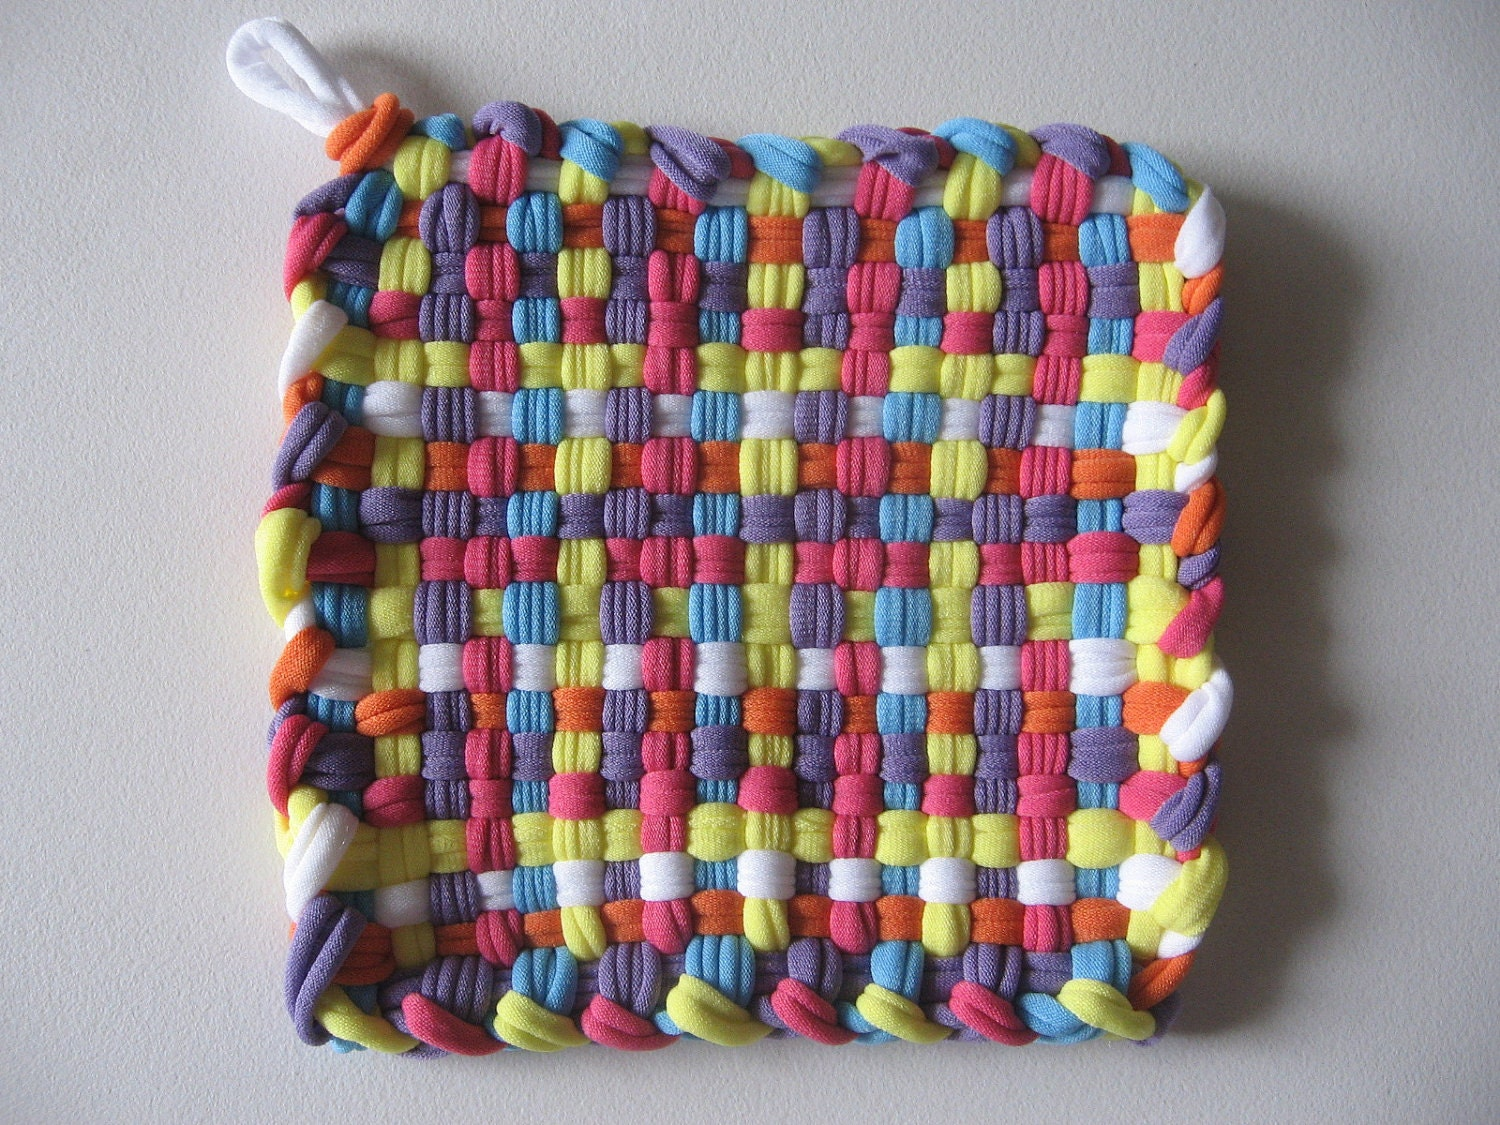 Handmade Woven Pot Holder Mug Mat Multicolor. Free by SashaMCrafts: https://www.etsy.com/listing/86125963/handmade-woven-pot-holder-mug...